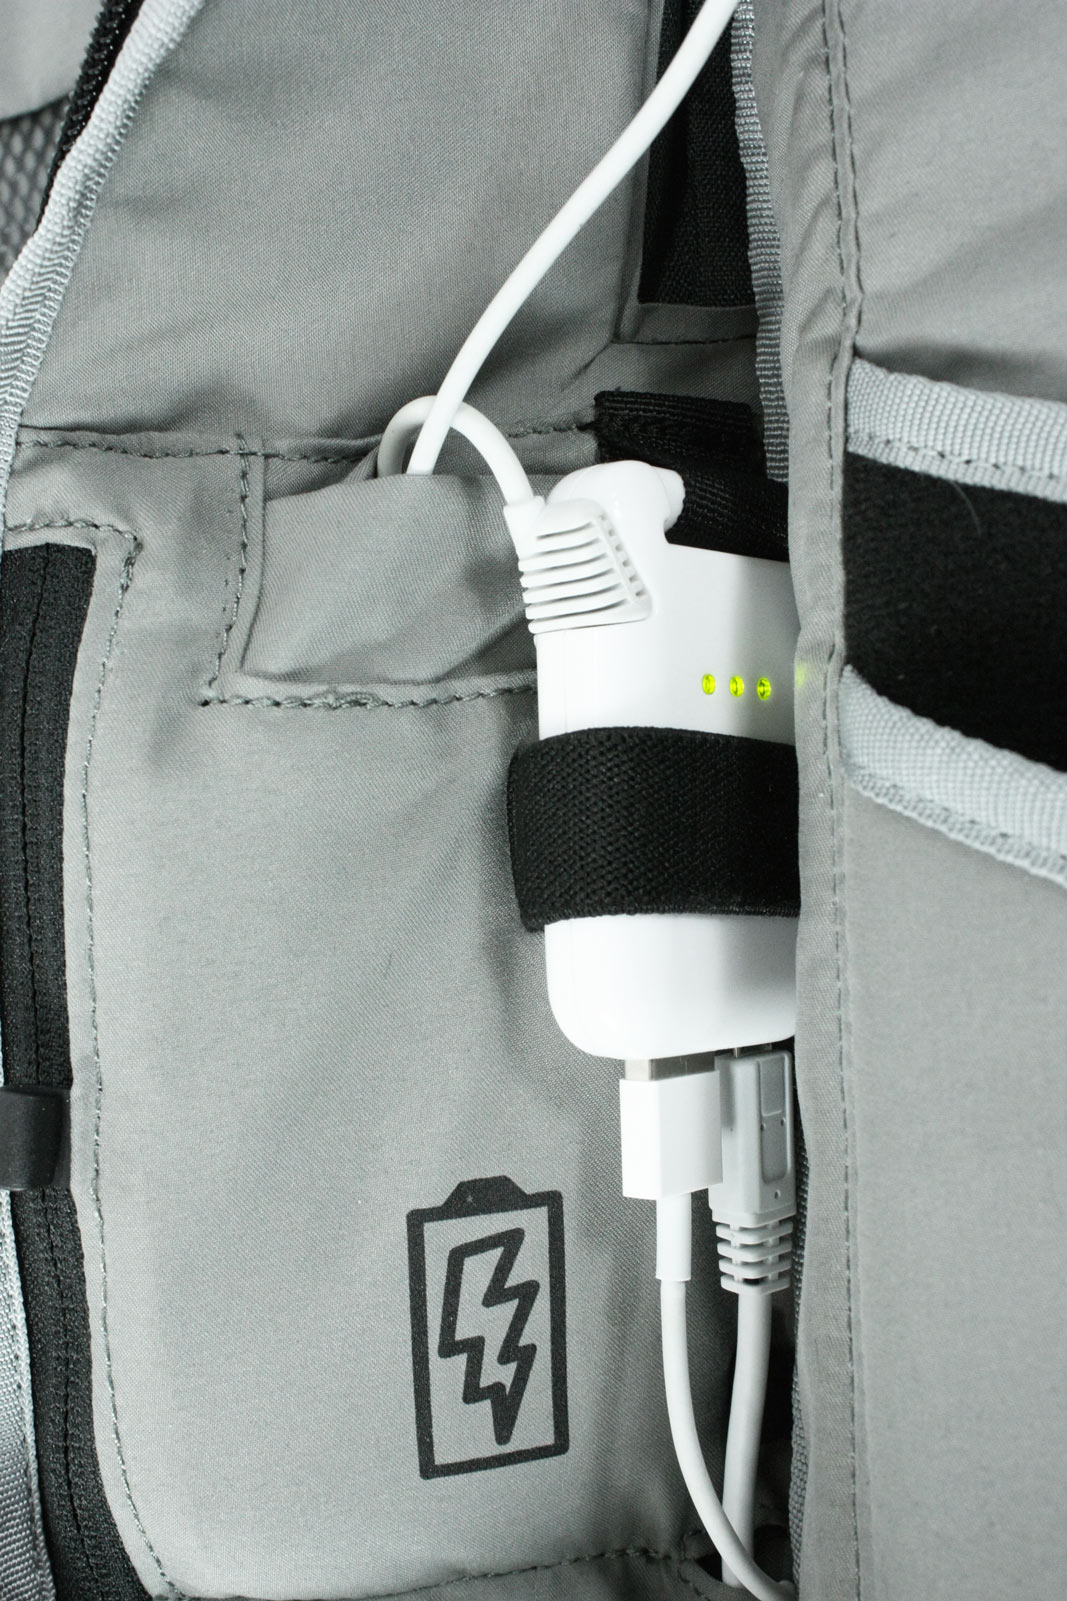 Inside the Colfax backpacks is a lithium polymer battery with enough charge to top up a cell phone twice.